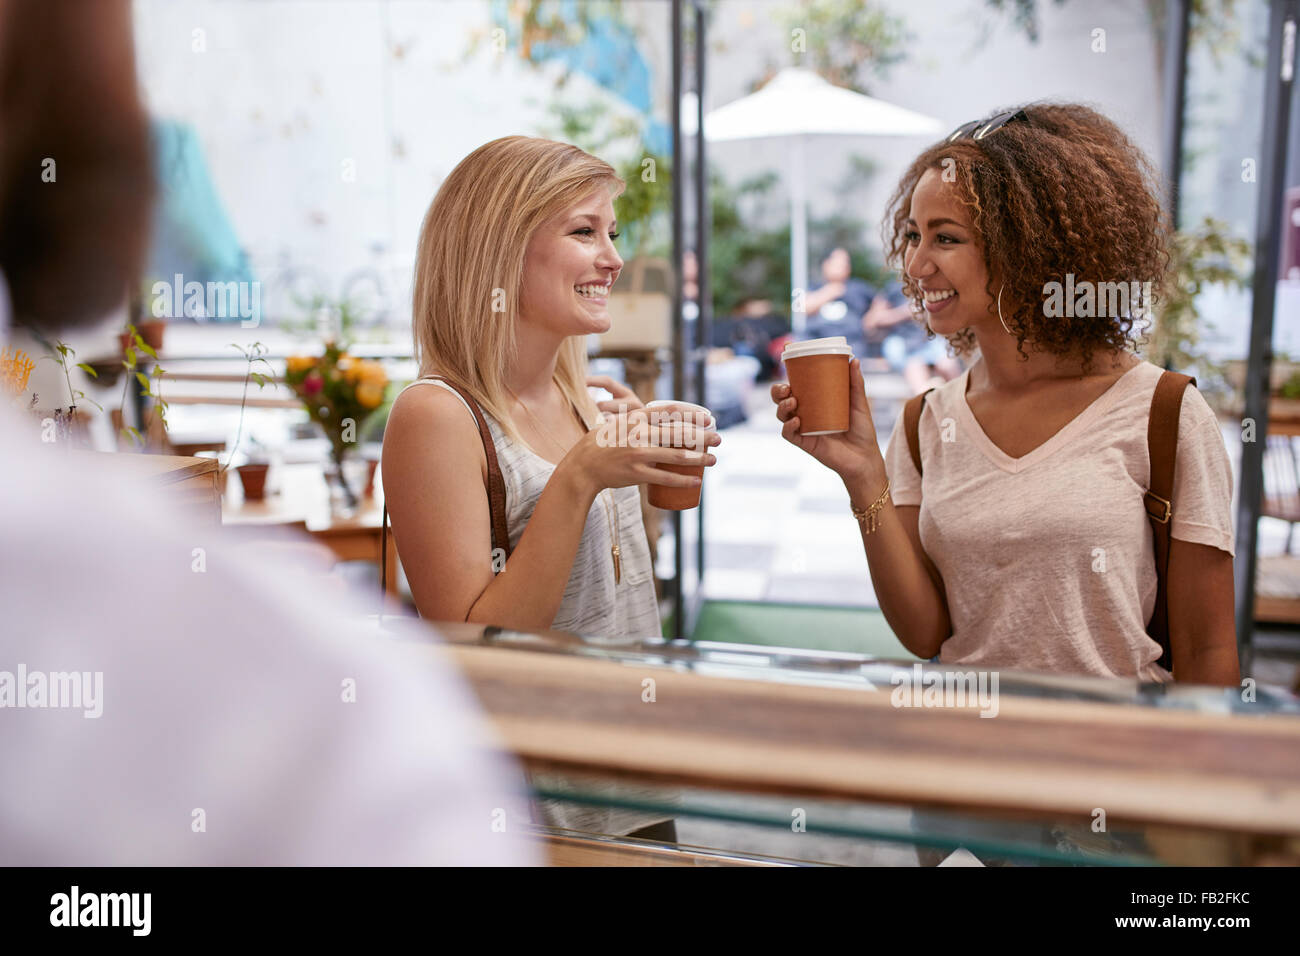 Indoor shot of two young female friends having a cup of coffee at cafe. Women at restaurant drinking hot coffee - Stock Image